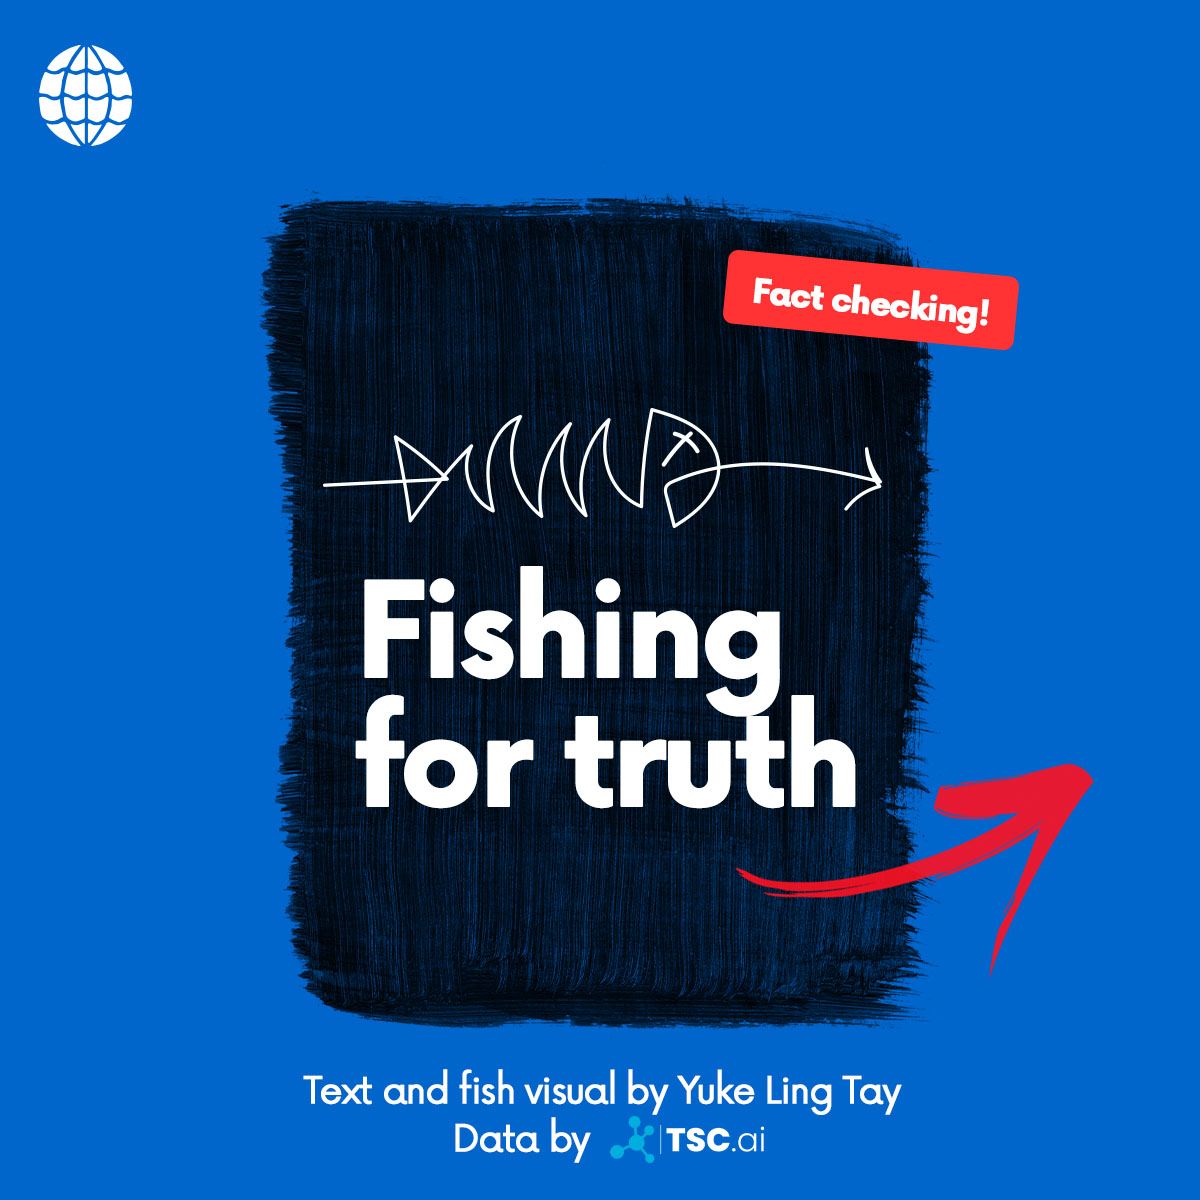 'Fishing for truth'